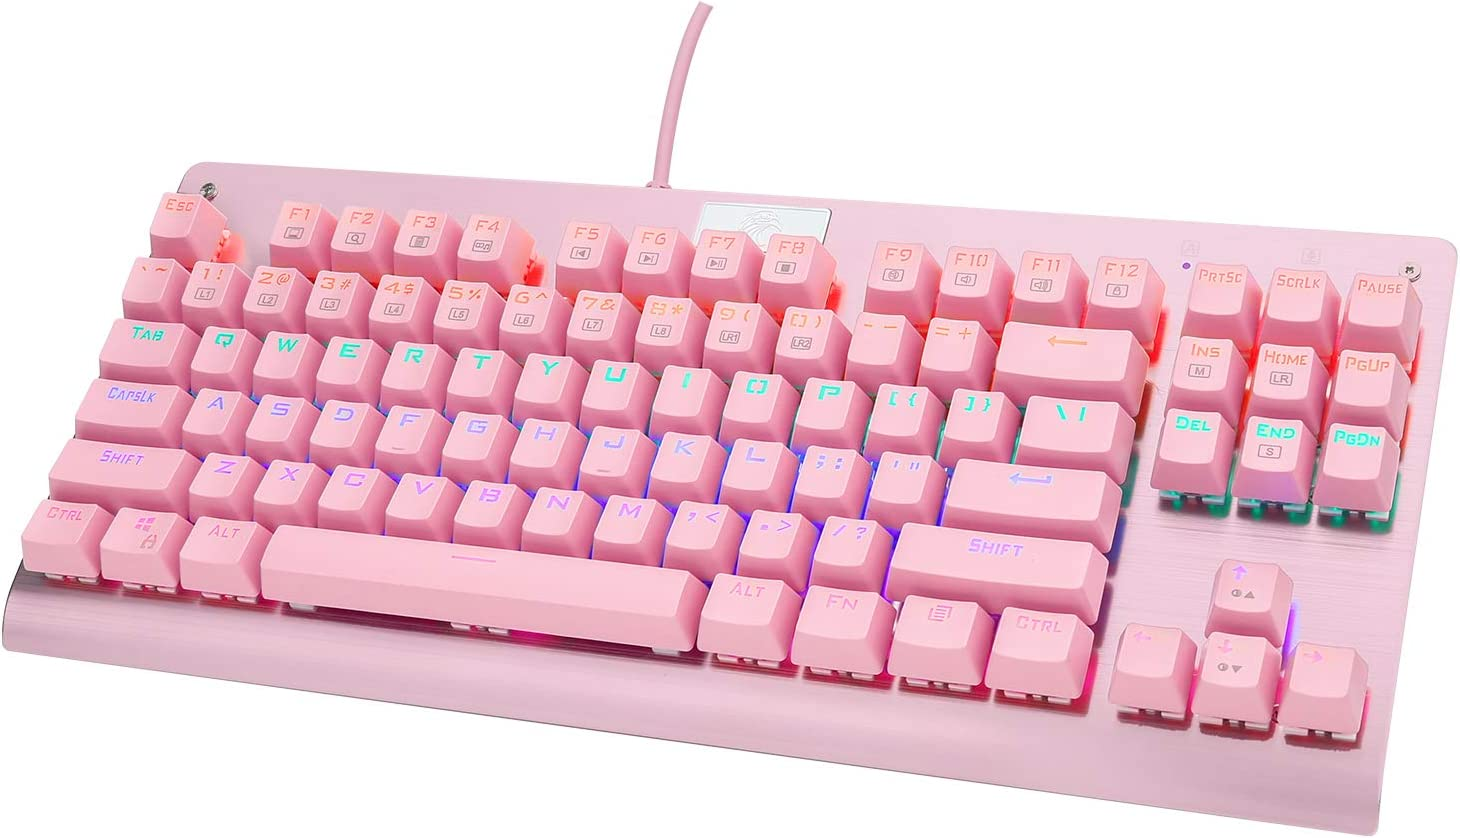 HUO JI E-Yooso Z-77 Mechanical Gaming Keyboard with Rainbow LED Backlit, Red Switches, Tenkeyless 87 Keys Anti-Ghosting for Mac, PC, Pink